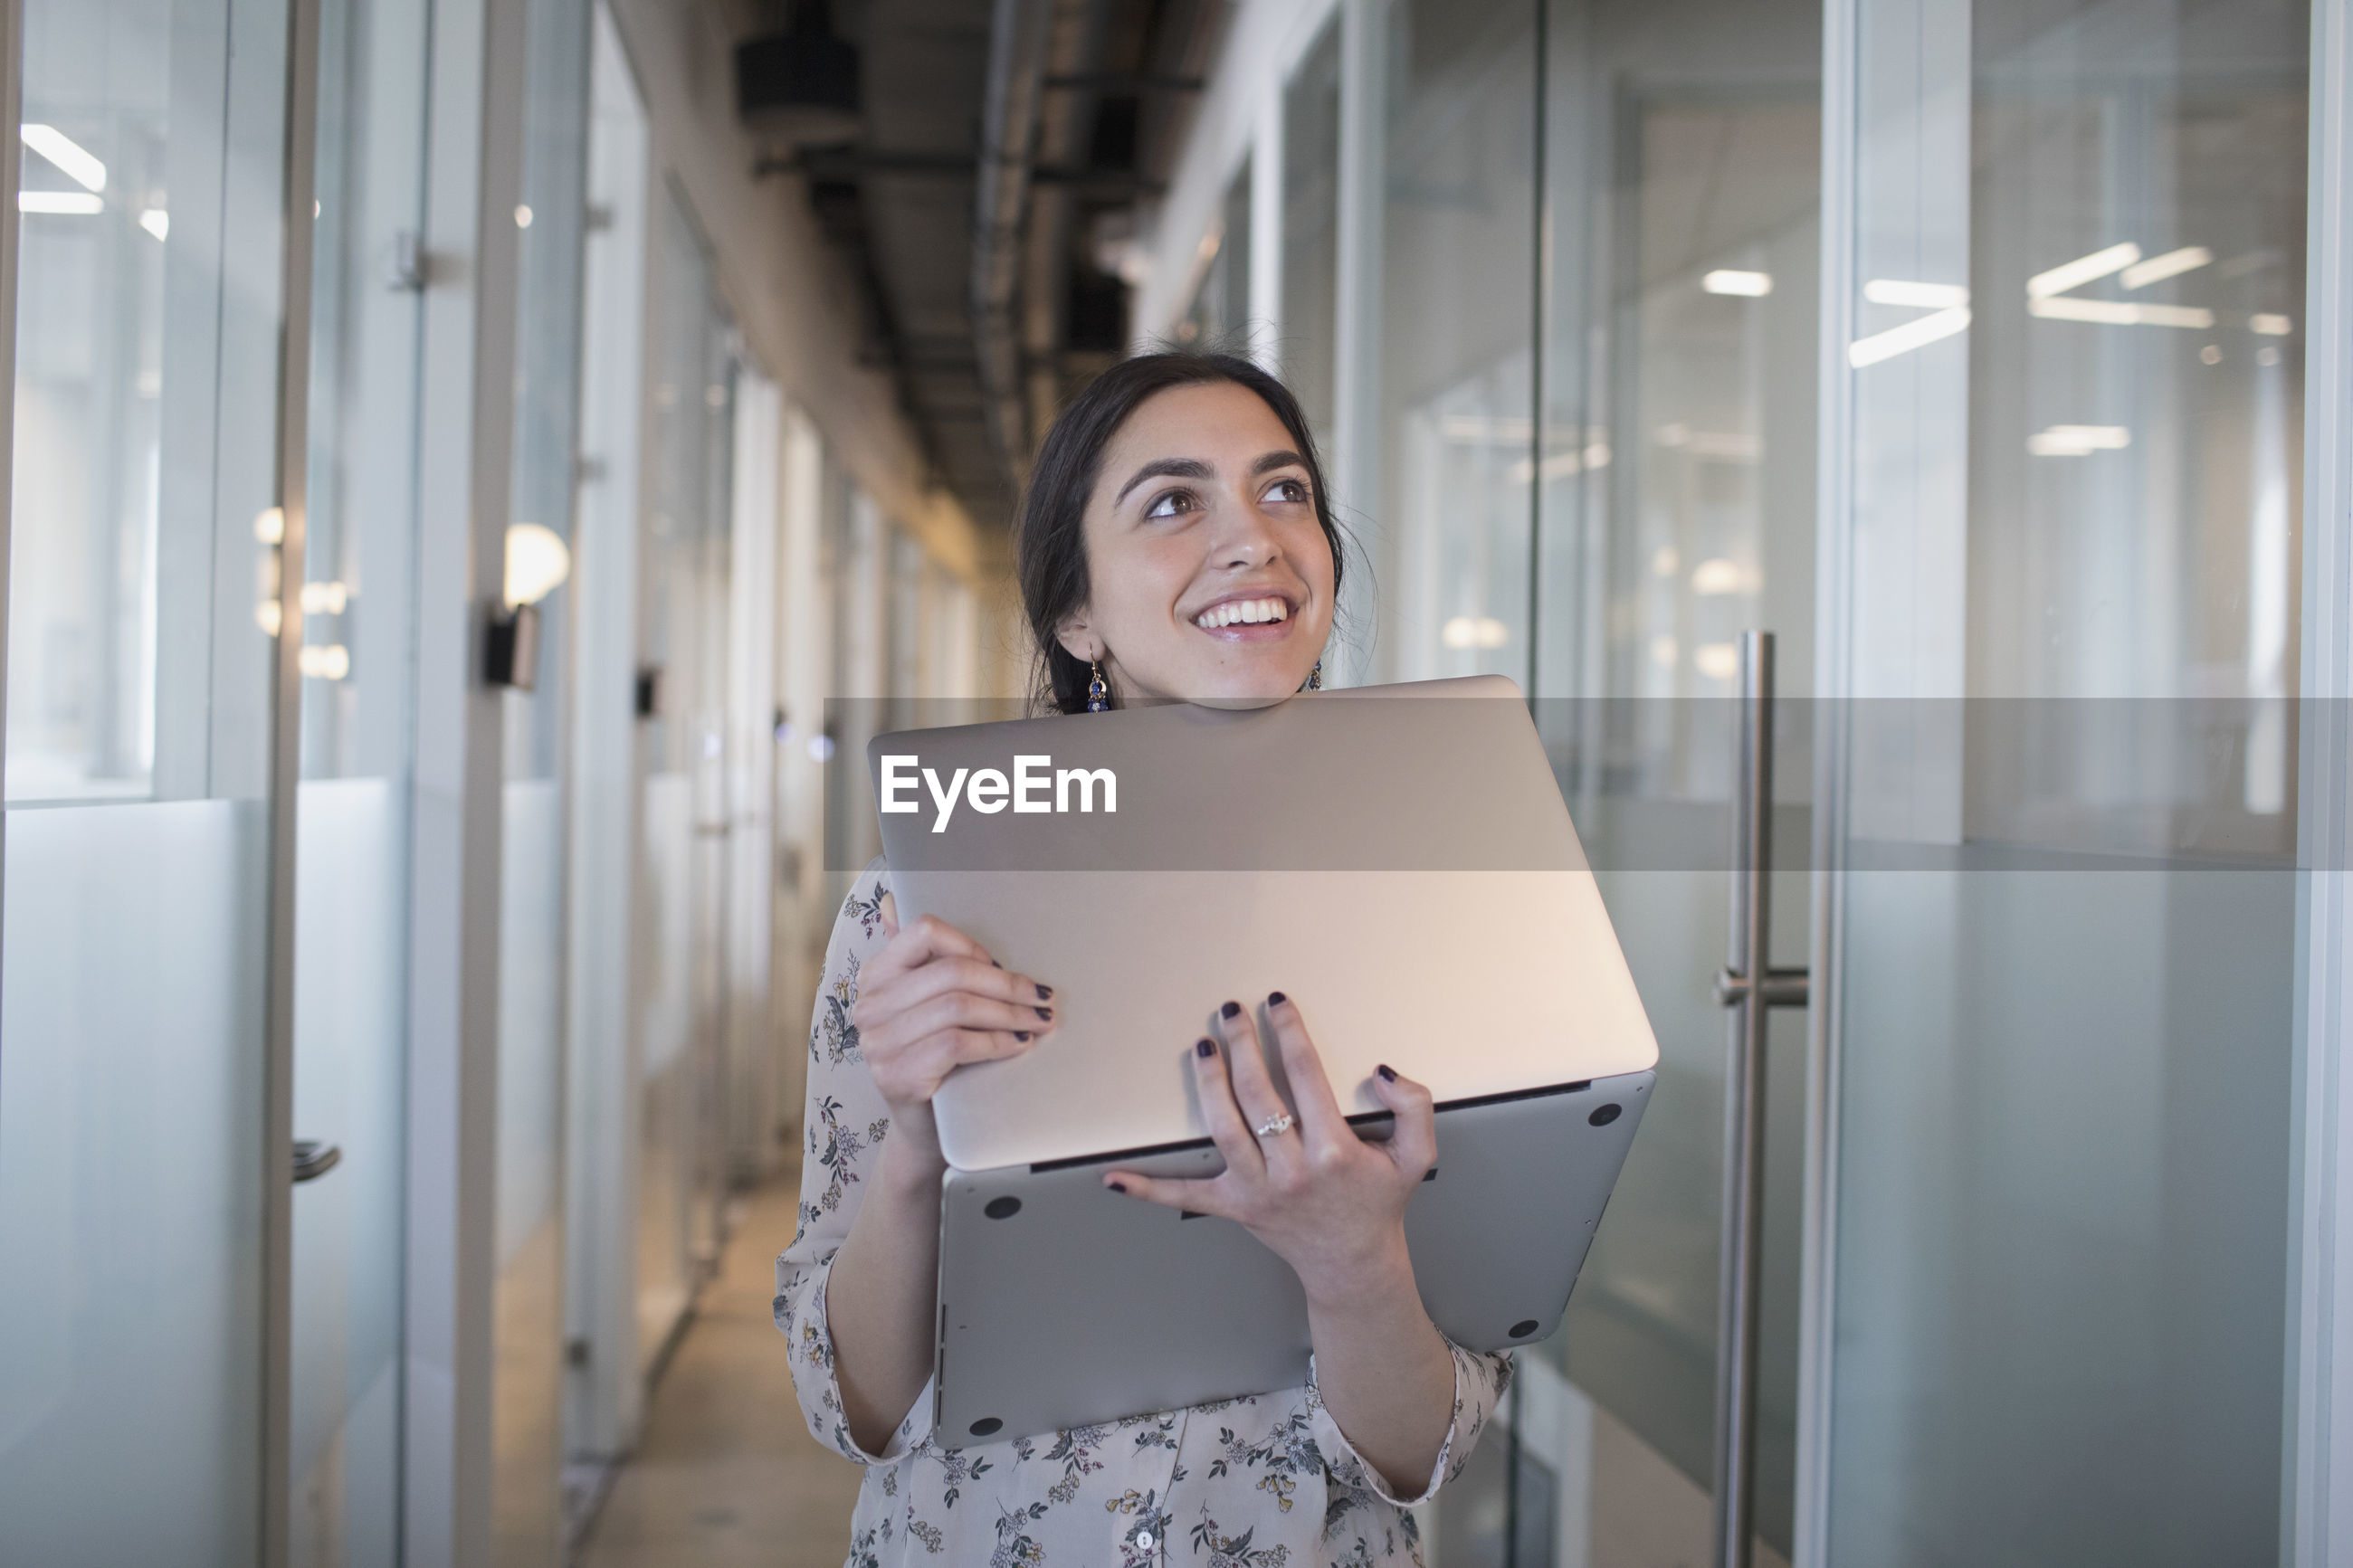 PORTRAIT OF A SMILING YOUNG WOMAN USING MOBILE PHONE IN CORRIDOR